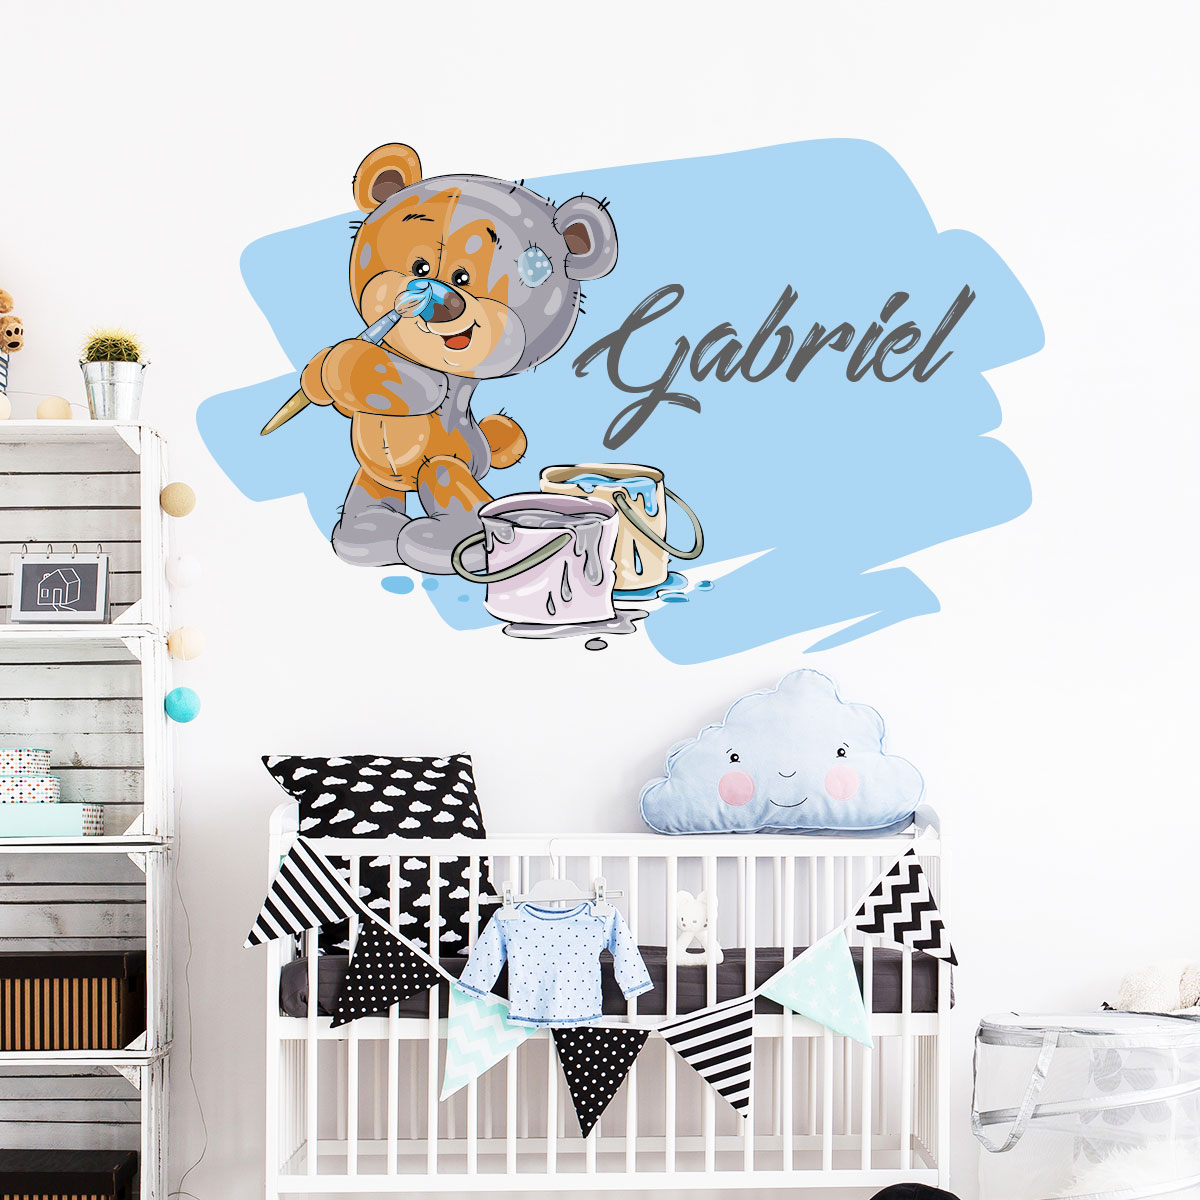 sticker pr nom personnalis ourson en peluche stickers chambre enfants chambre b b ambiance. Black Bedroom Furniture Sets. Home Design Ideas